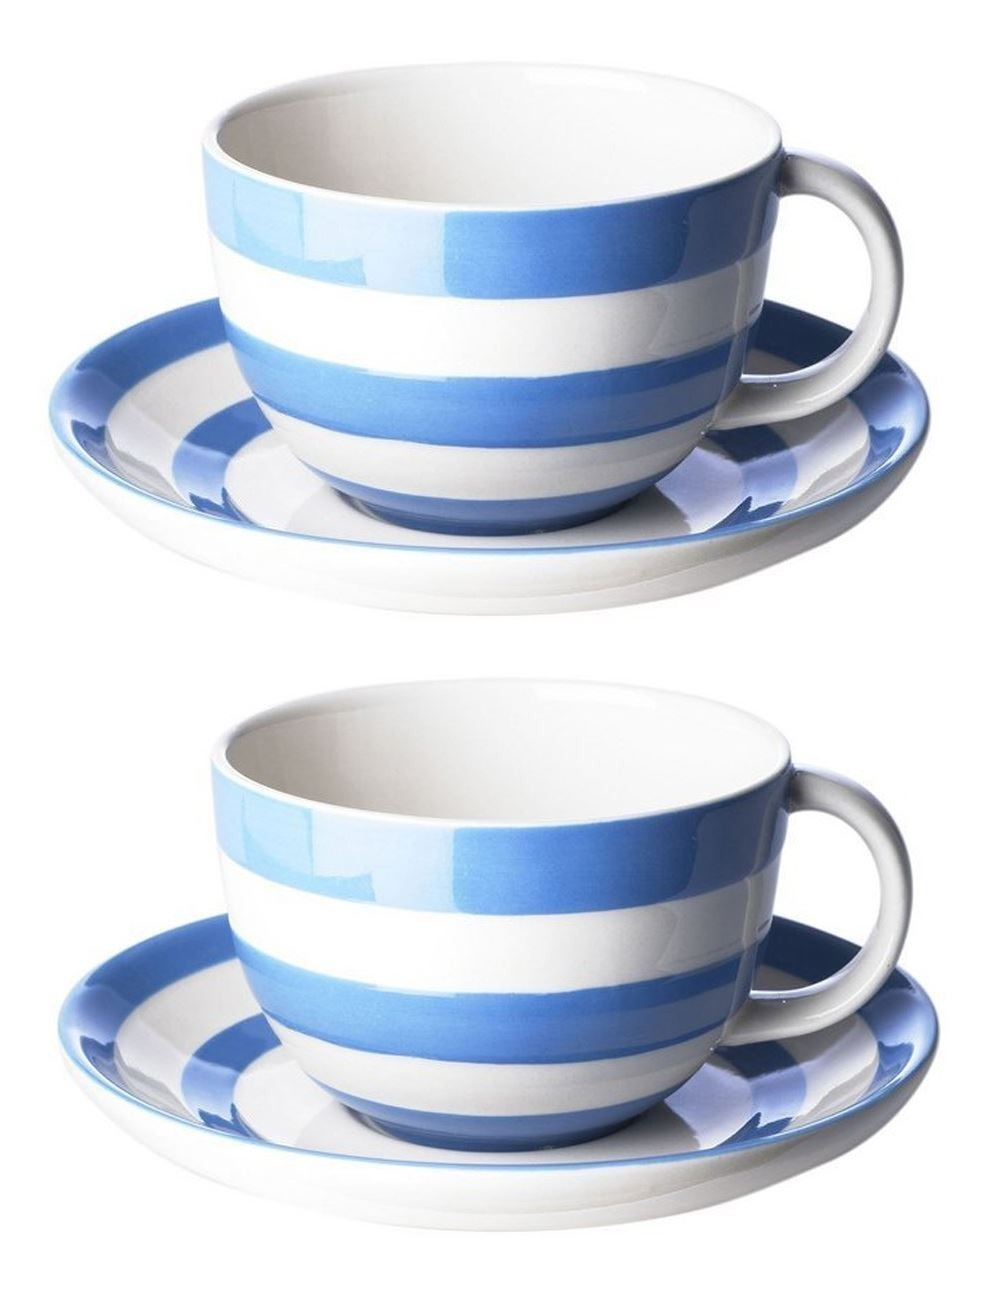 cornishware blau rot wei streifen 2er set 4 cappuccino tassen untertasse ebay. Black Bedroom Furniture Sets. Home Design Ideas